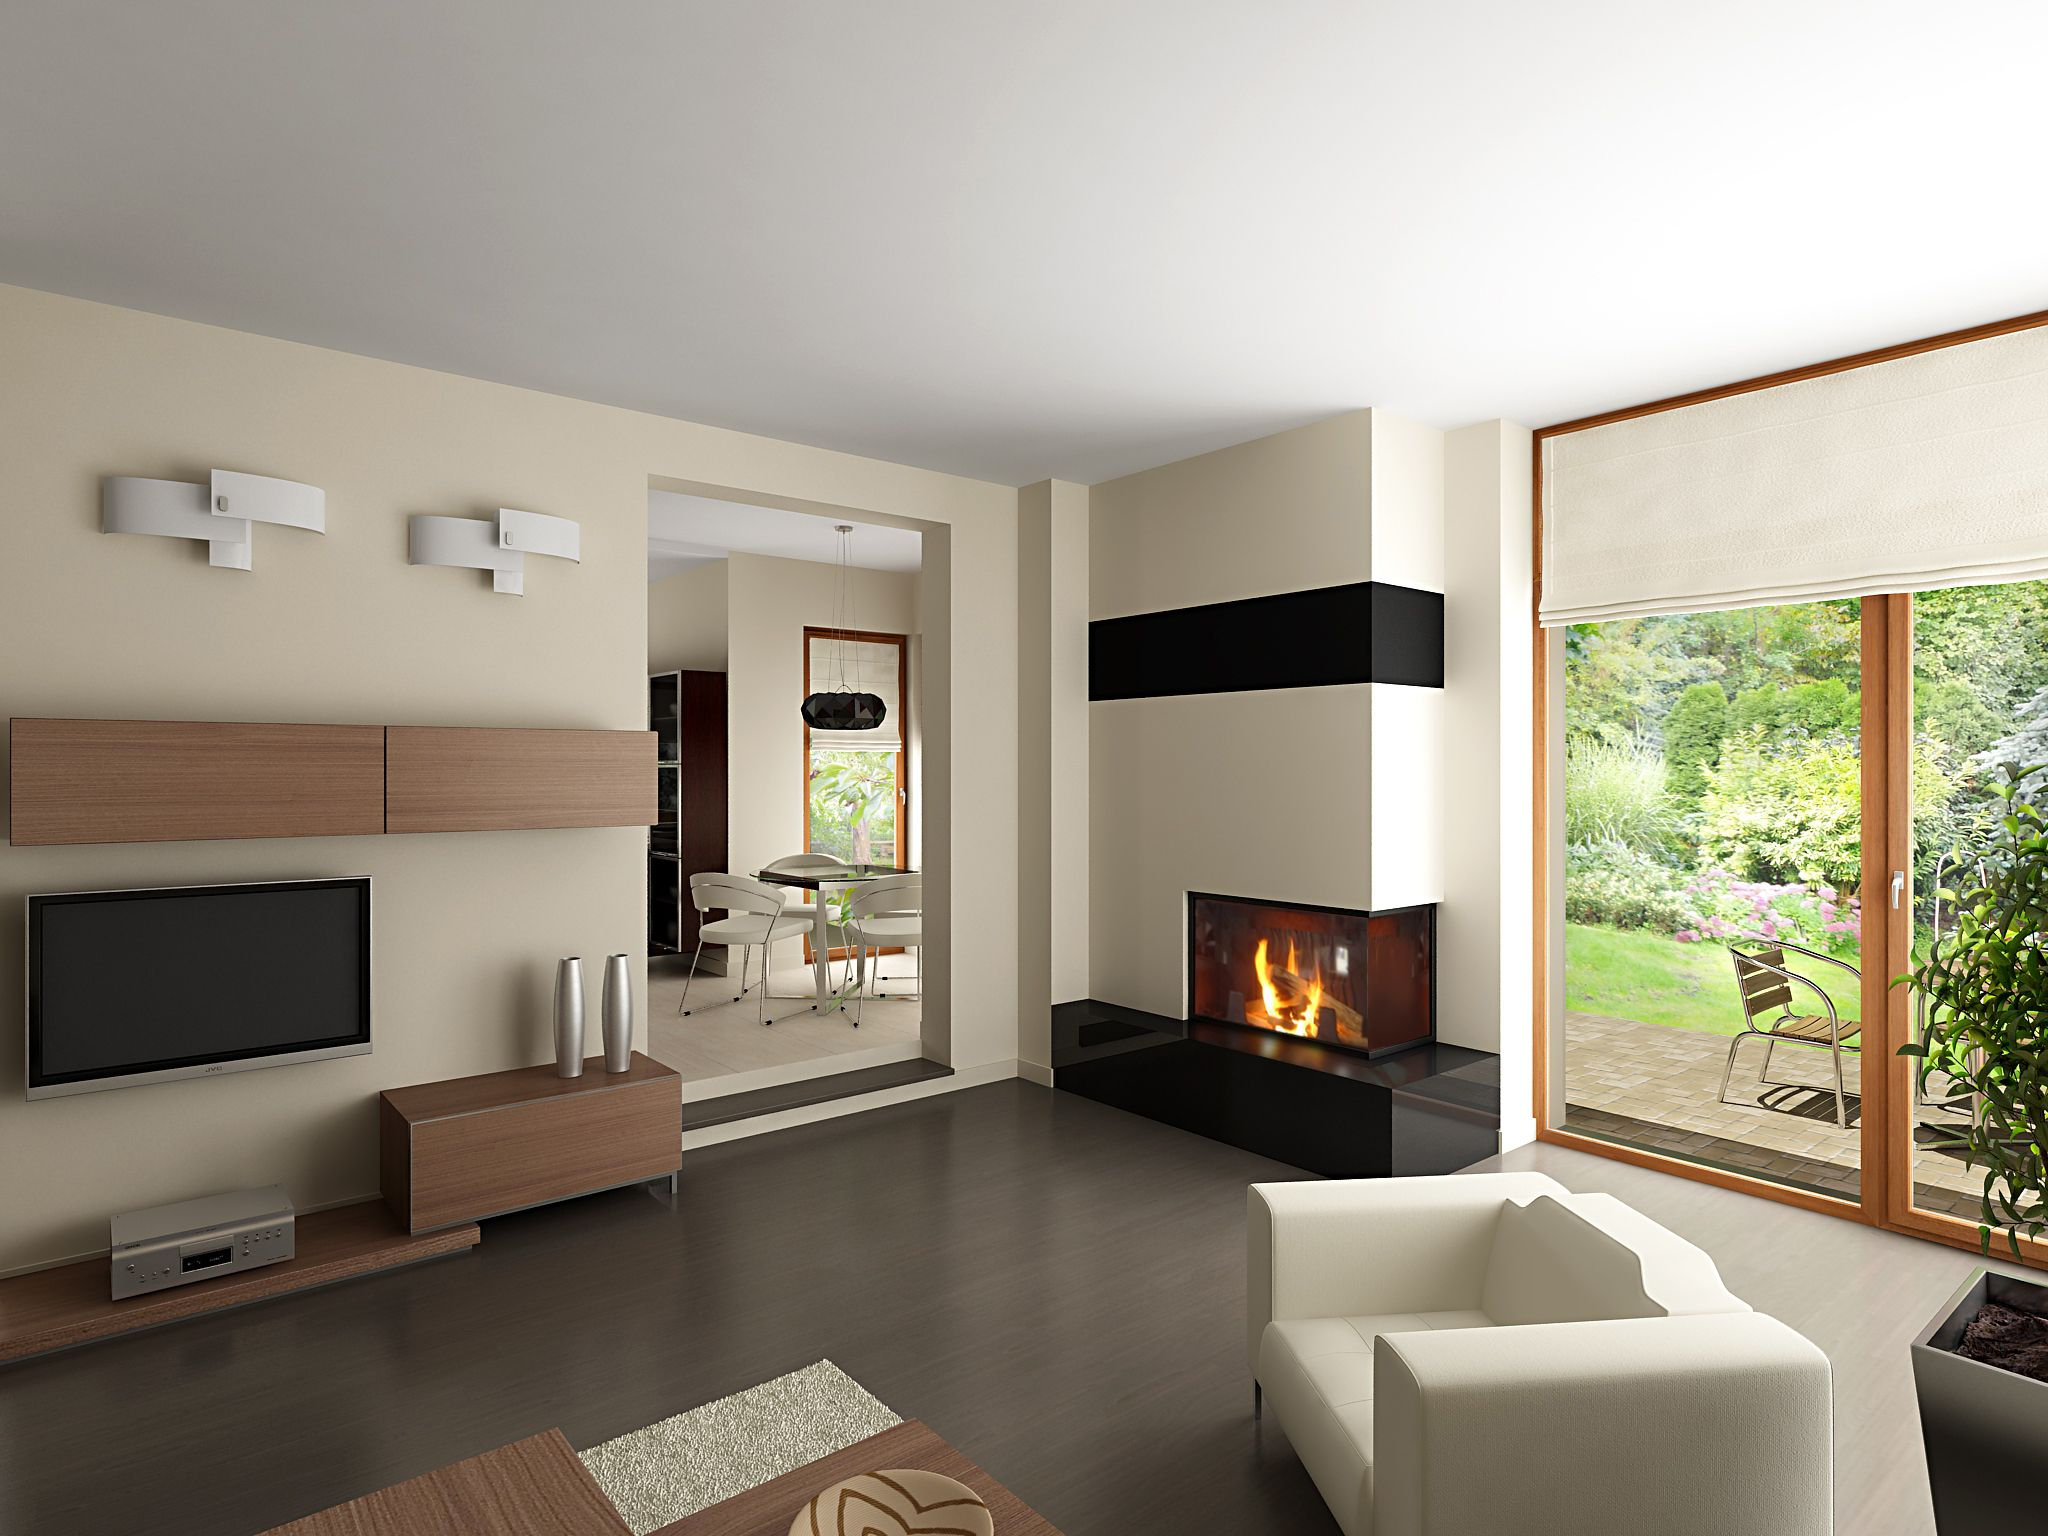 kominek | fireplace | Pinterest | Tv fireplace, Sitting rooms and ...